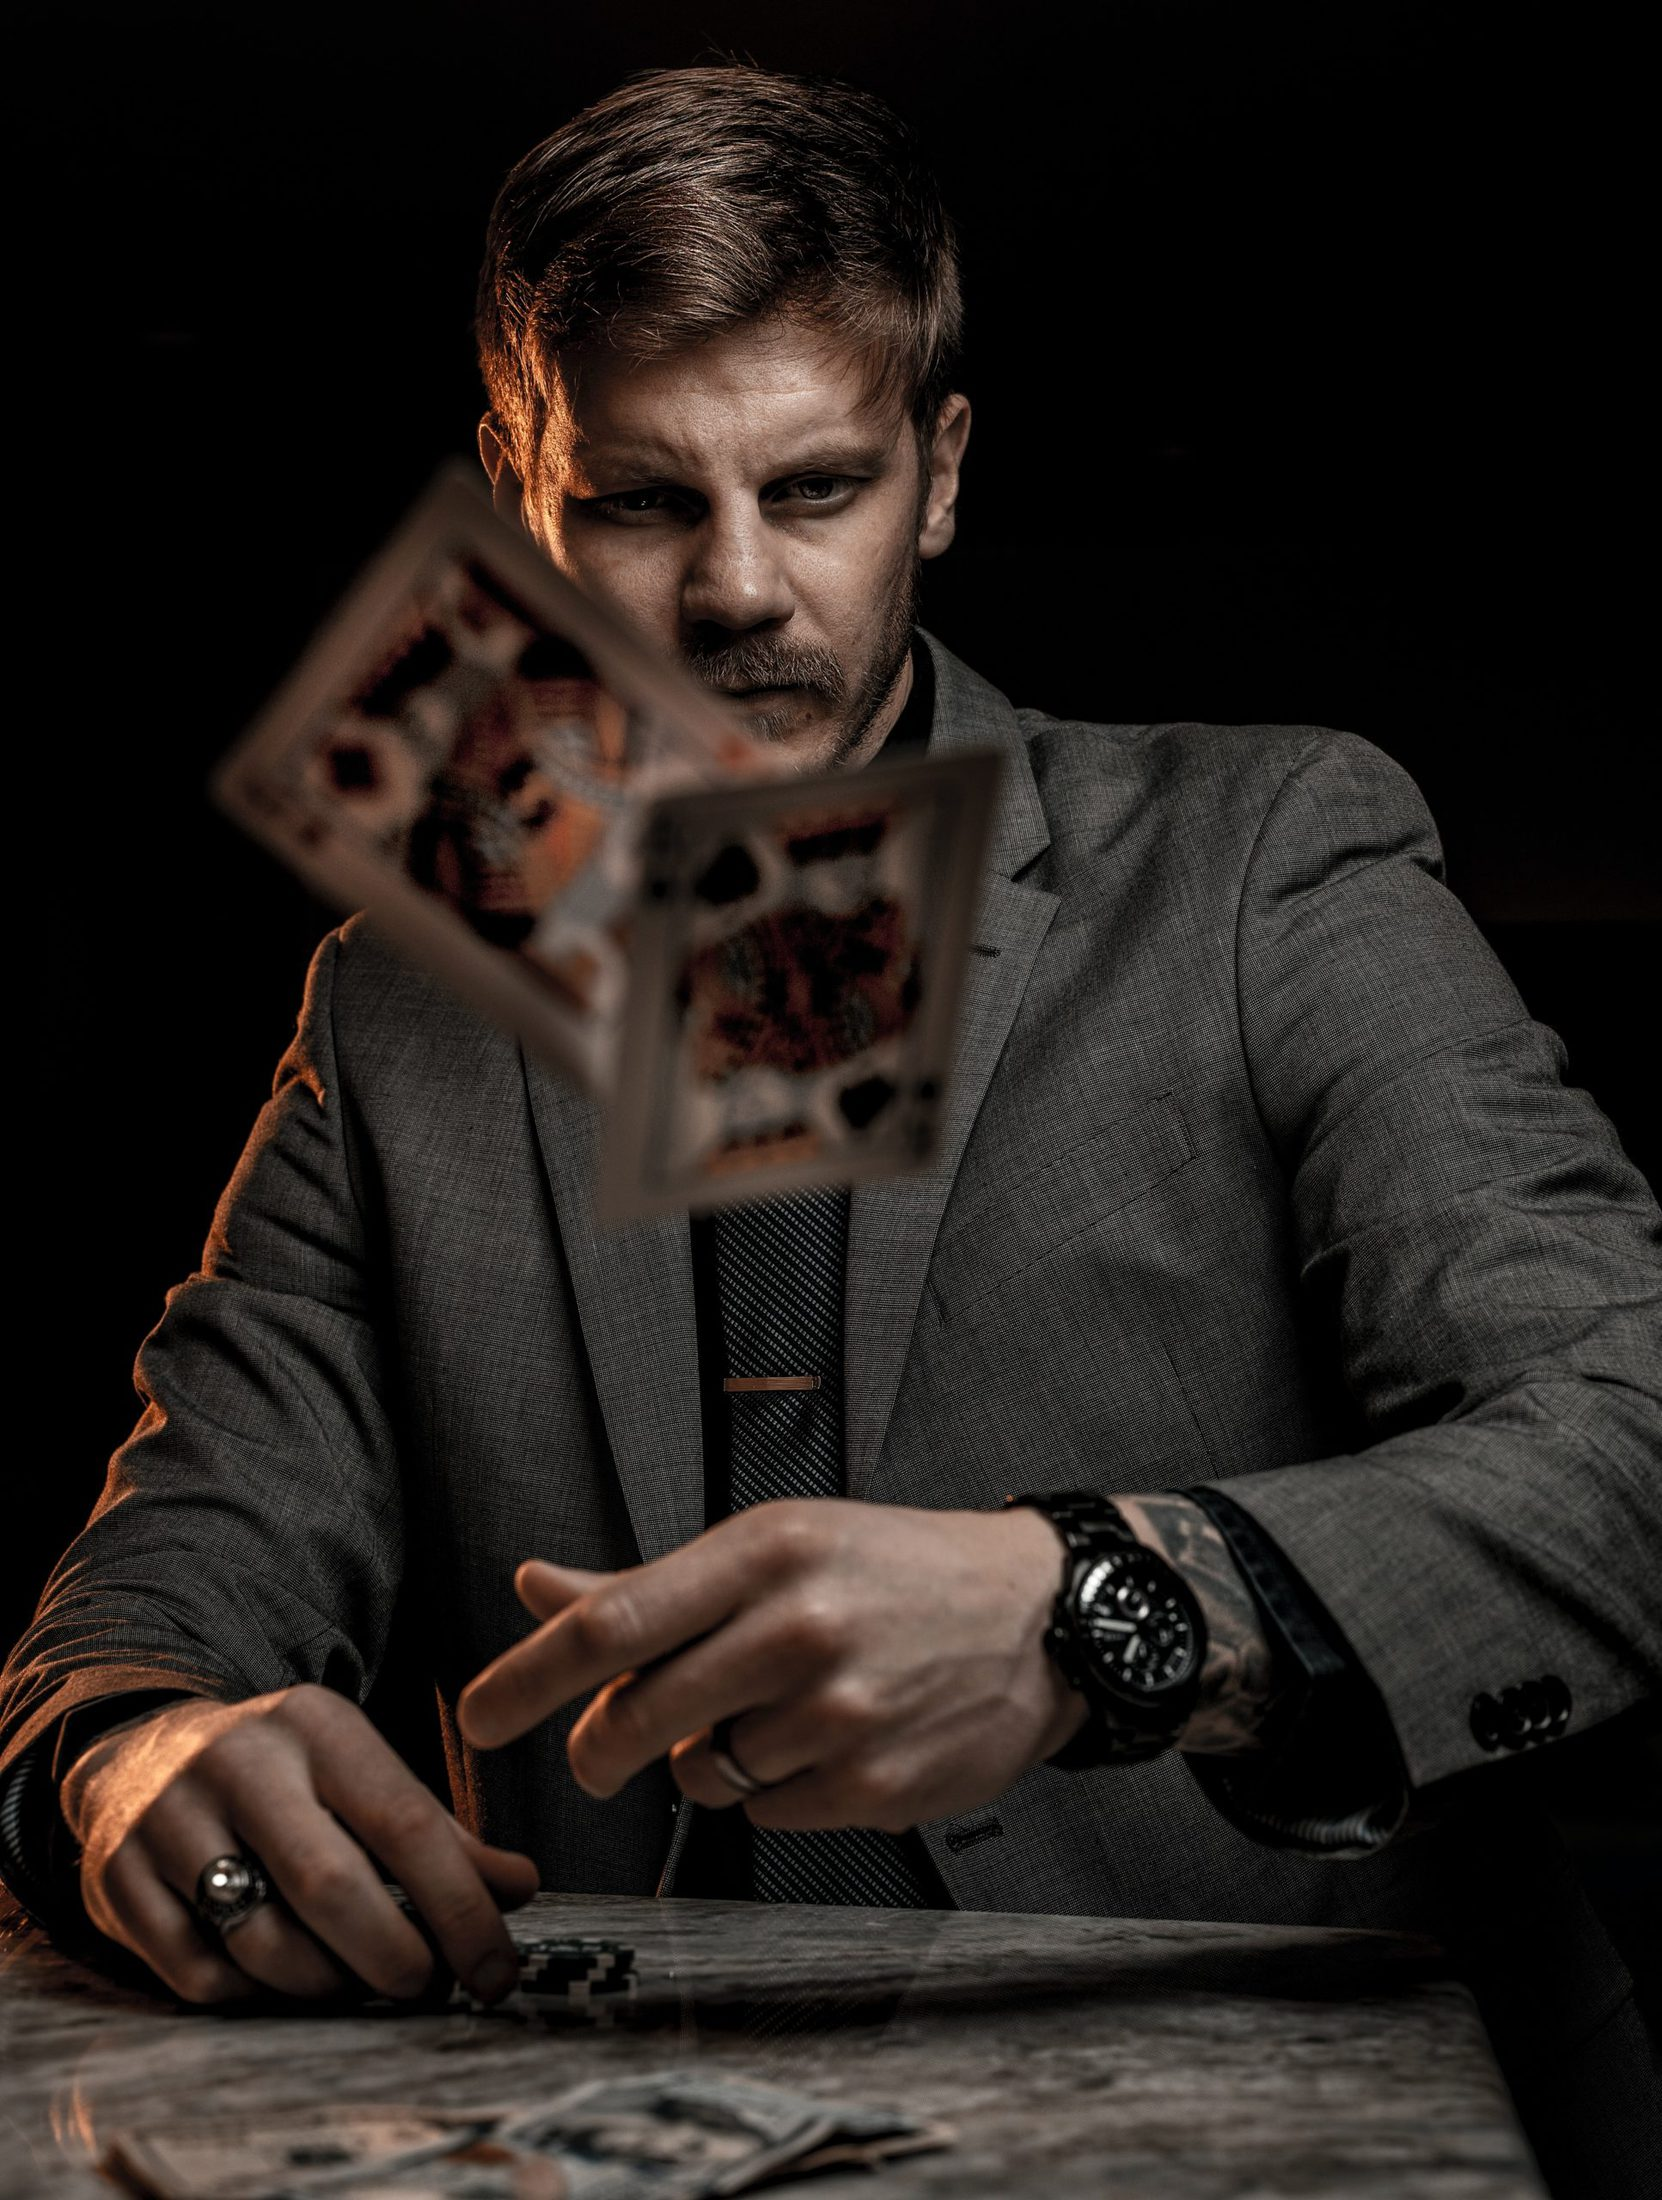 man in gray suit jacket holding jack of diamonds playing card